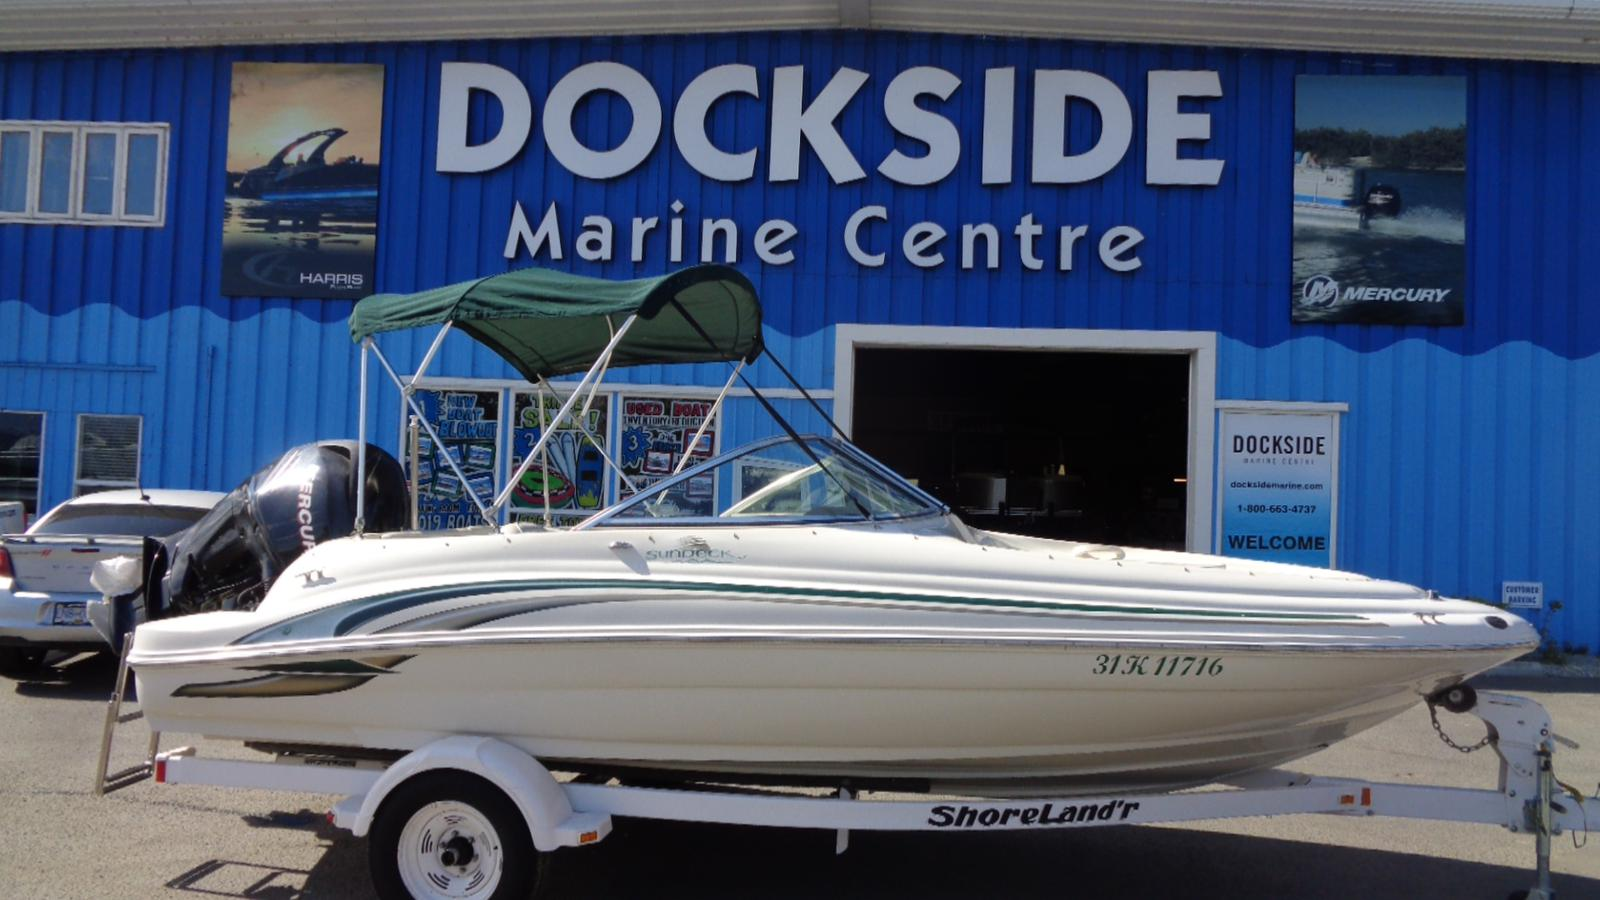 For Sale: 2000 Sea Ray 190 Sundeck 19ft<br/>Dockside Marine Centre, LTD.